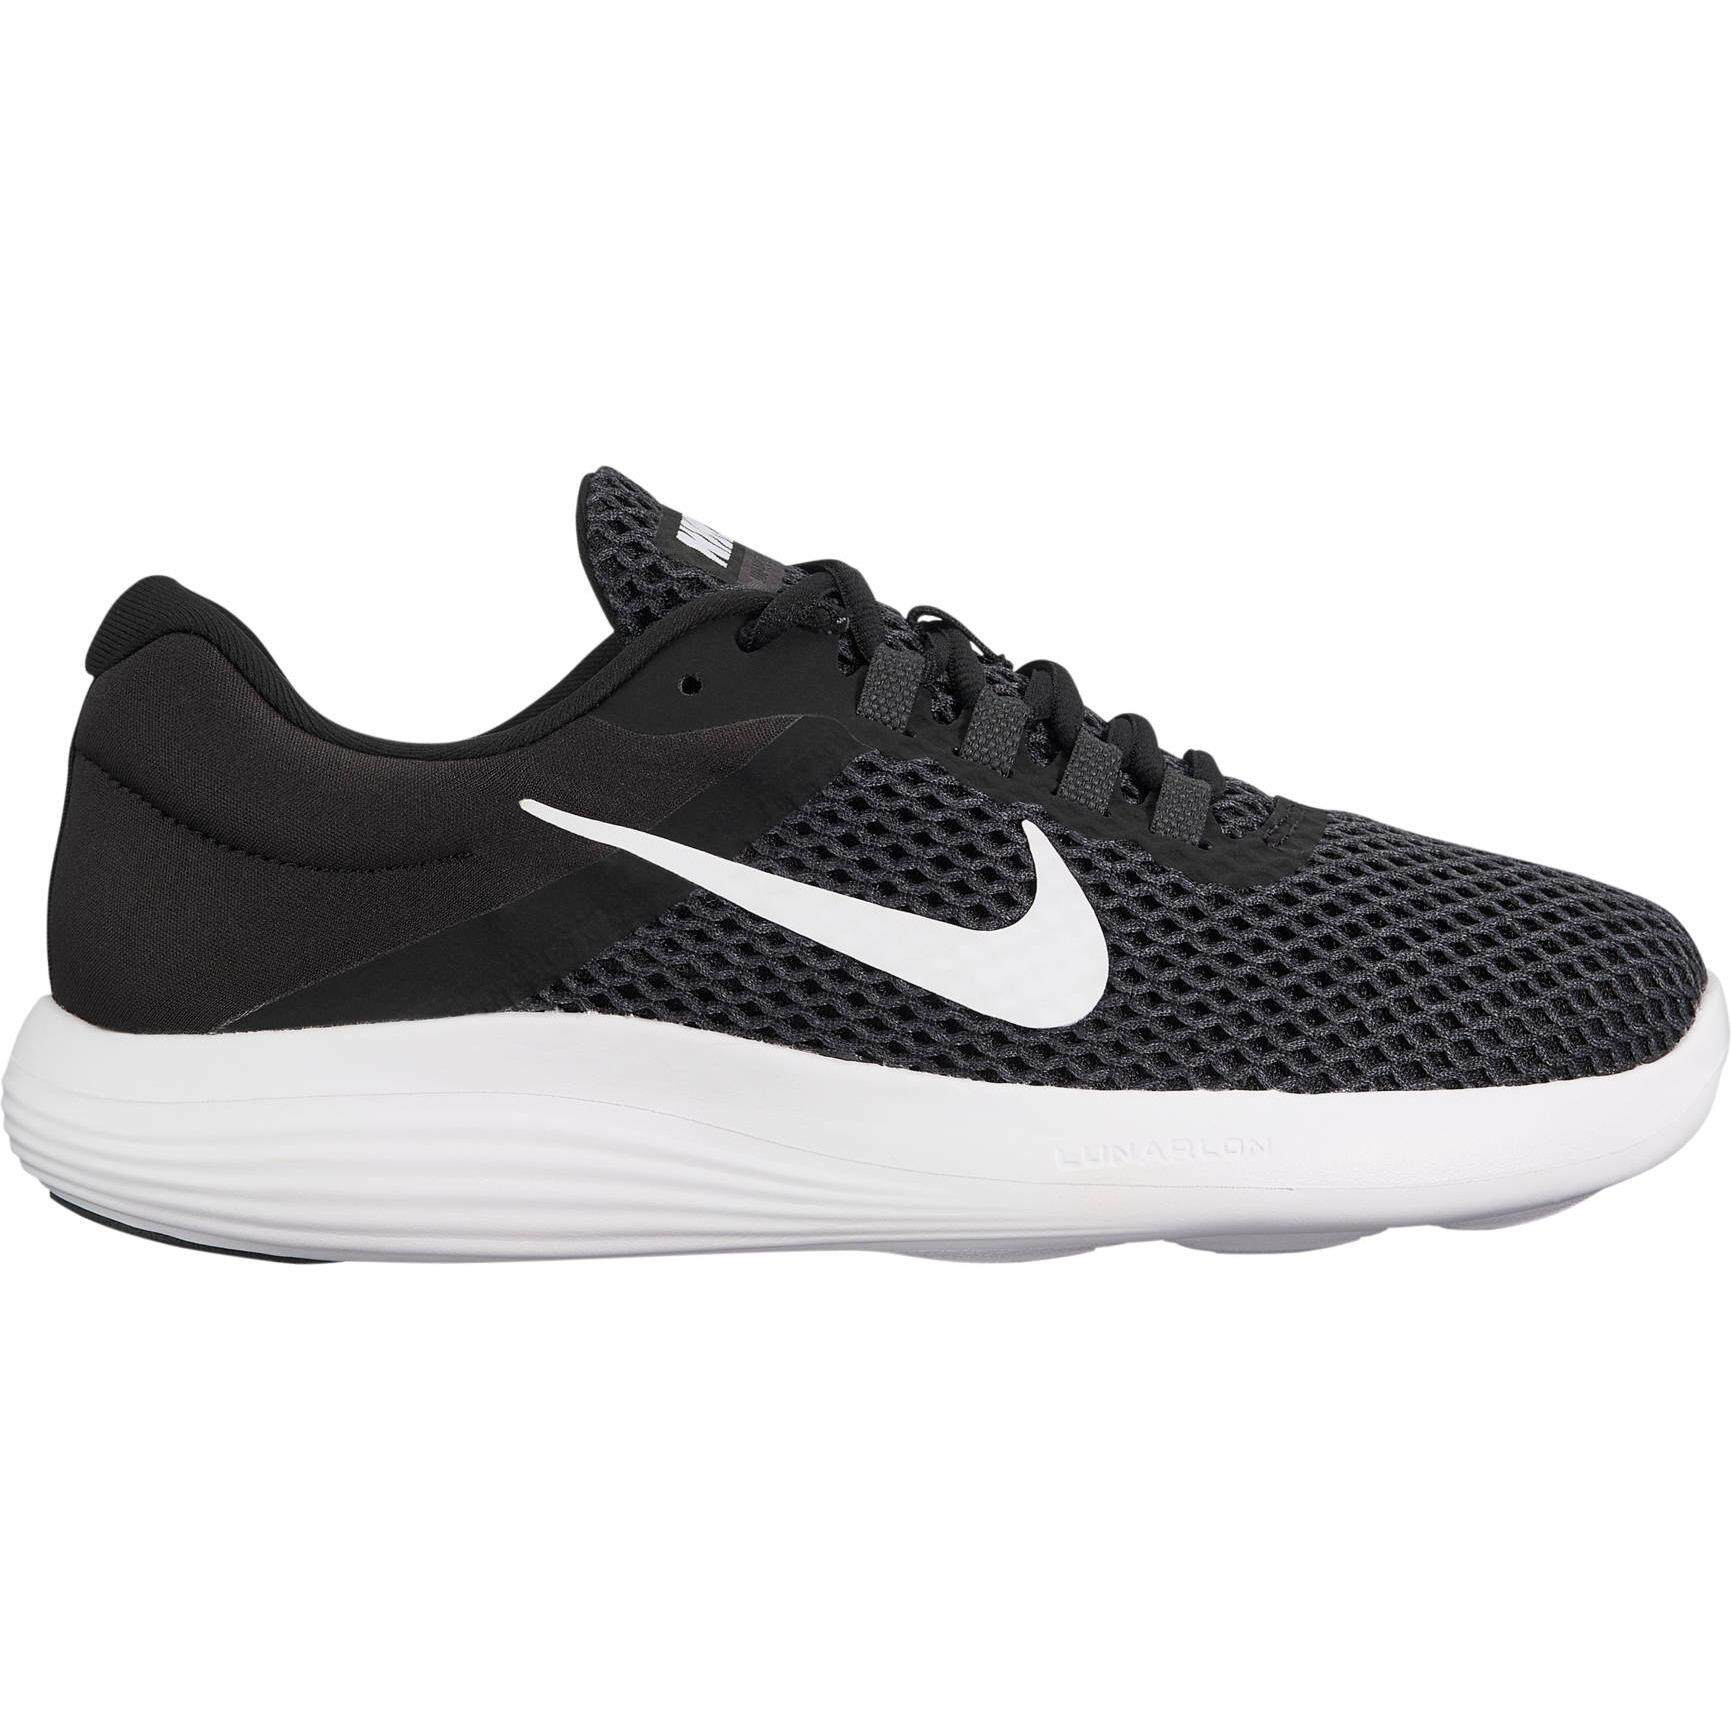 3ee304c2301 Buy Nike Women s Multi-Purpose Sport Shoes at Best Price In Malaysia ...